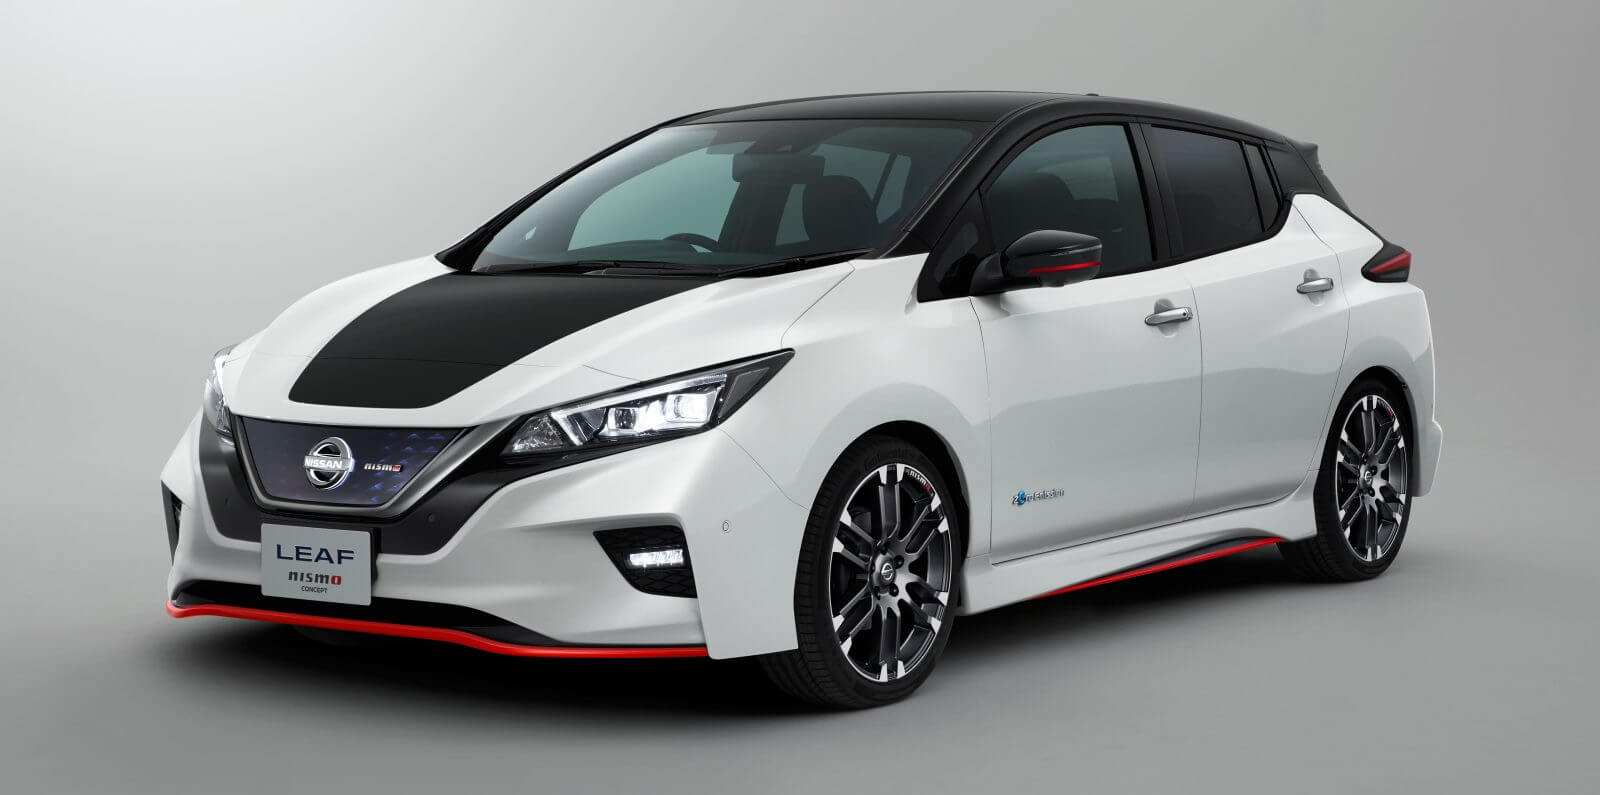 42 New 2019 Nissan Electric Car Reviews by 2019 Nissan Electric Car